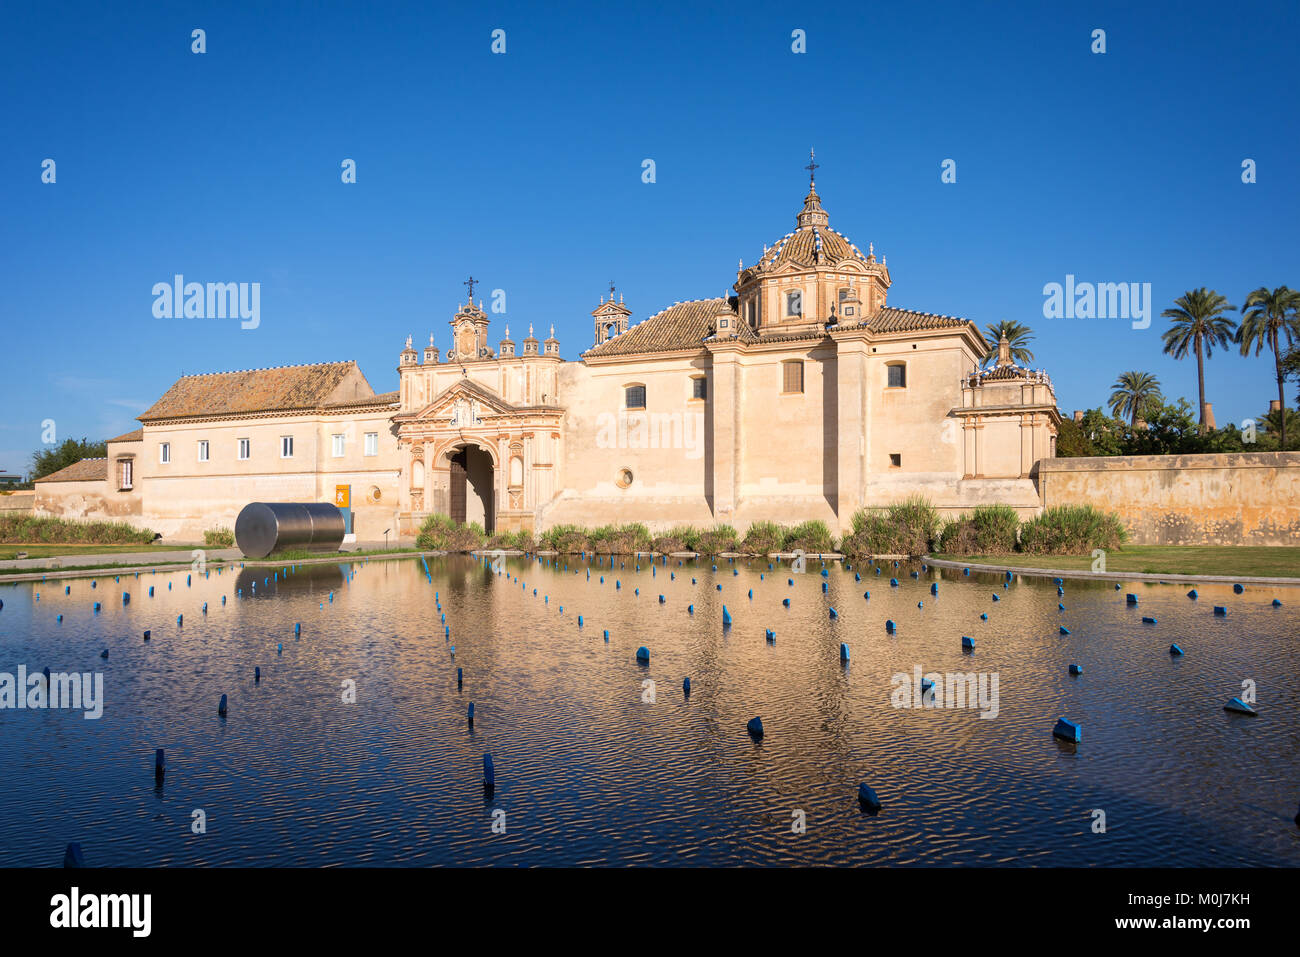 The Monastery of the Cartuja, now the site of the Andalusian Contemporary Art Center in Seville, Spain - Stock Image